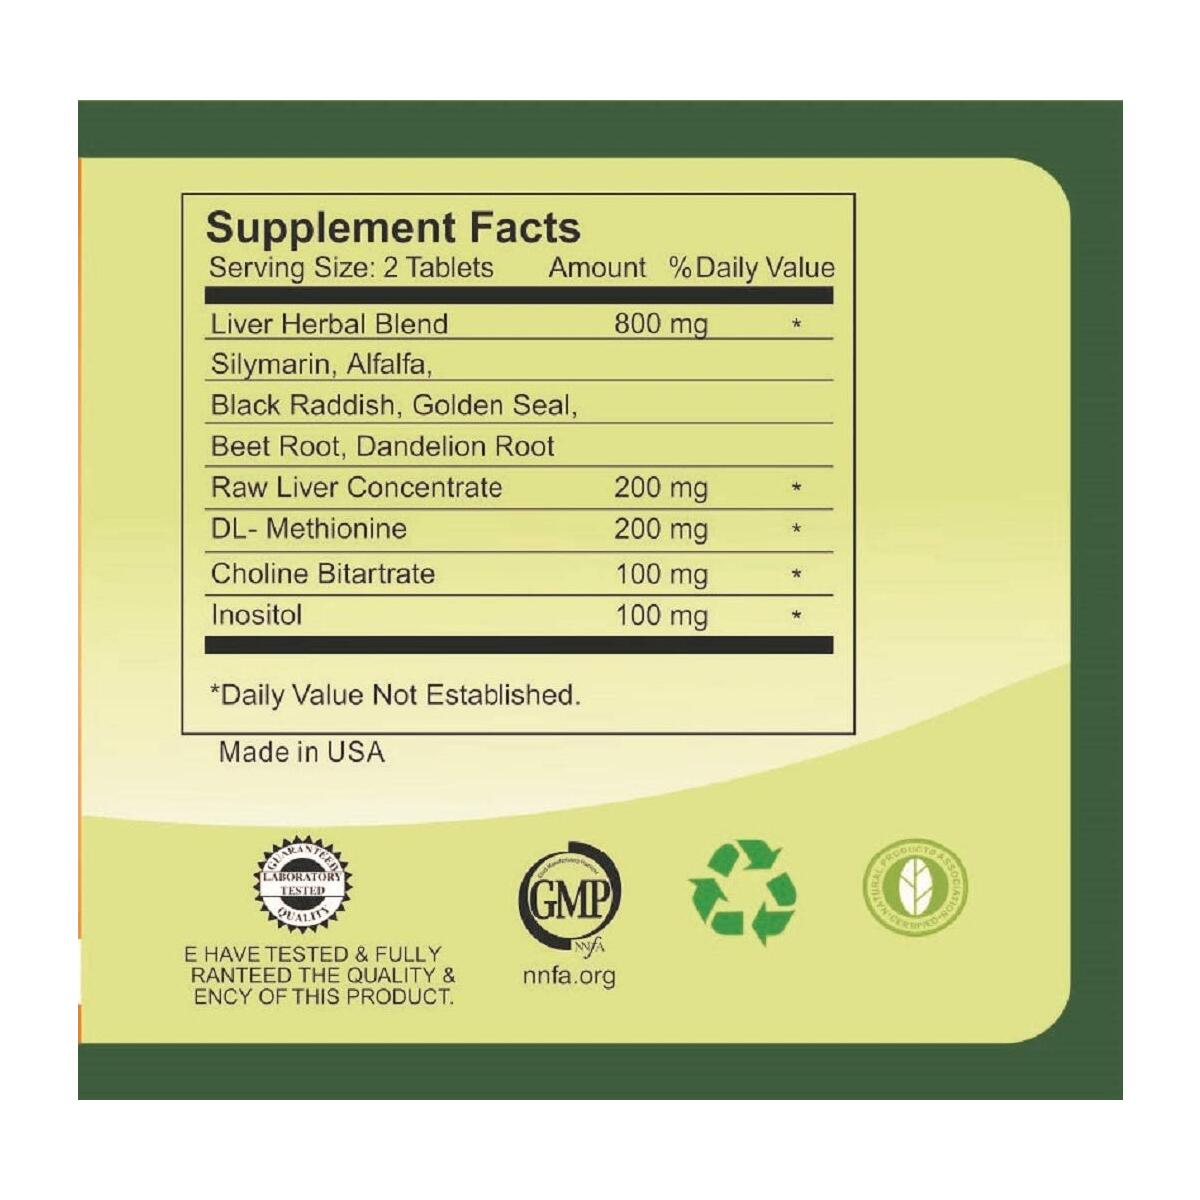 Esmond Natural: Pro Liver (Supports Liver Function), GMP, Natural Product Assn Certified, Made in USA-80 Tablets